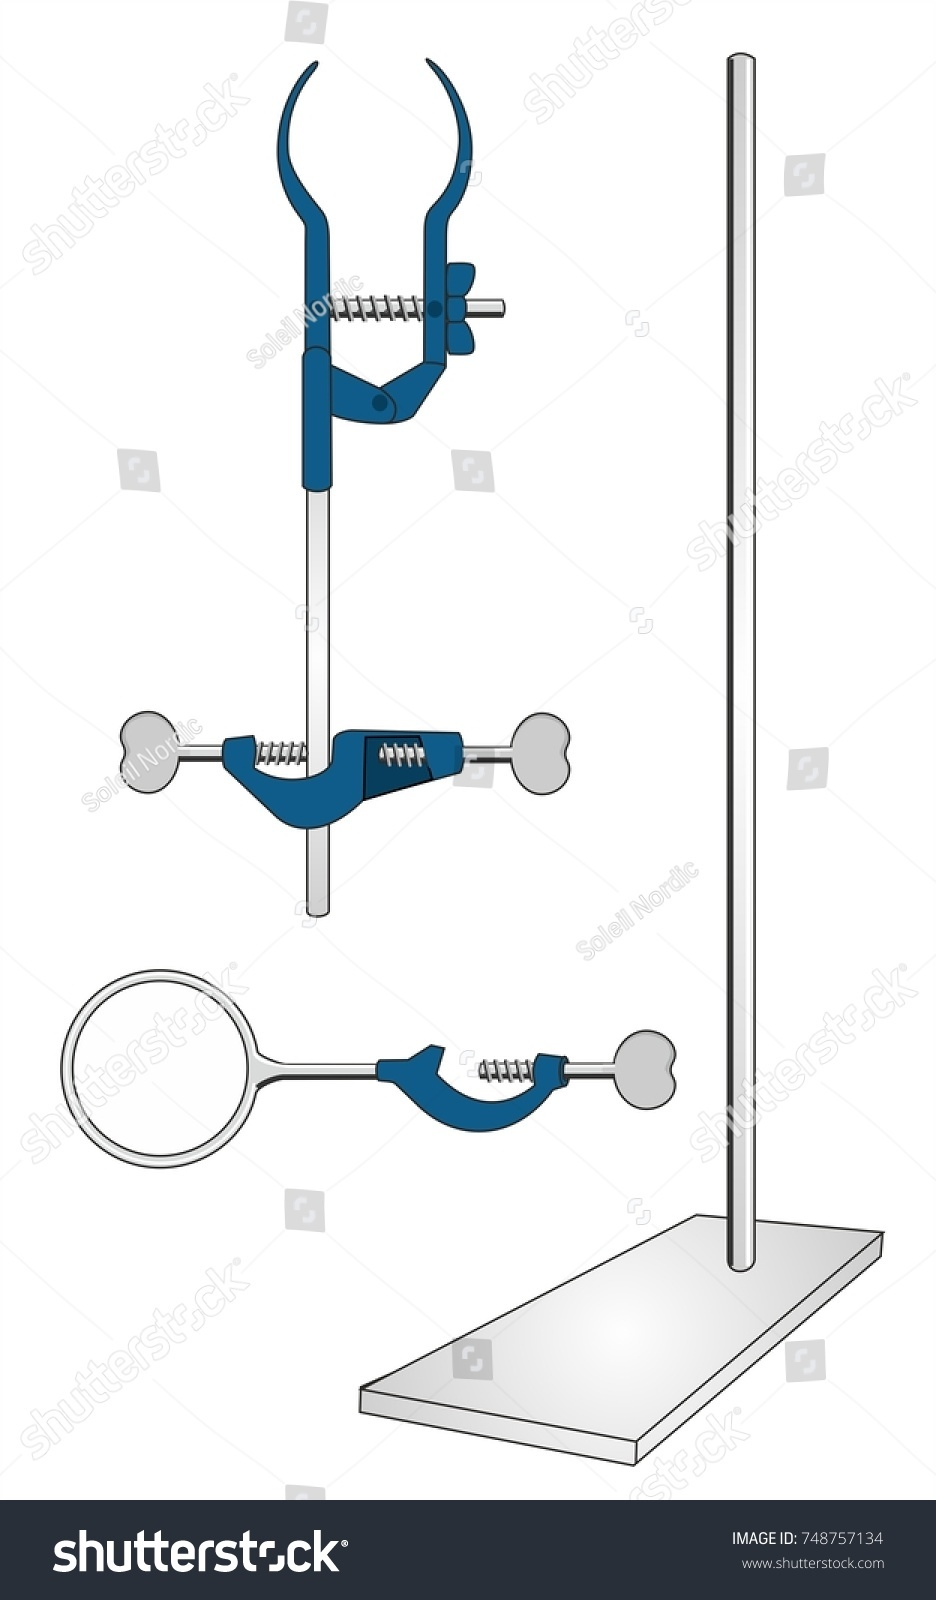 Laboratory Instruments Like Stand Clamps Iron Stock Illustration ... for Ring Stand Chemistry  76uhy